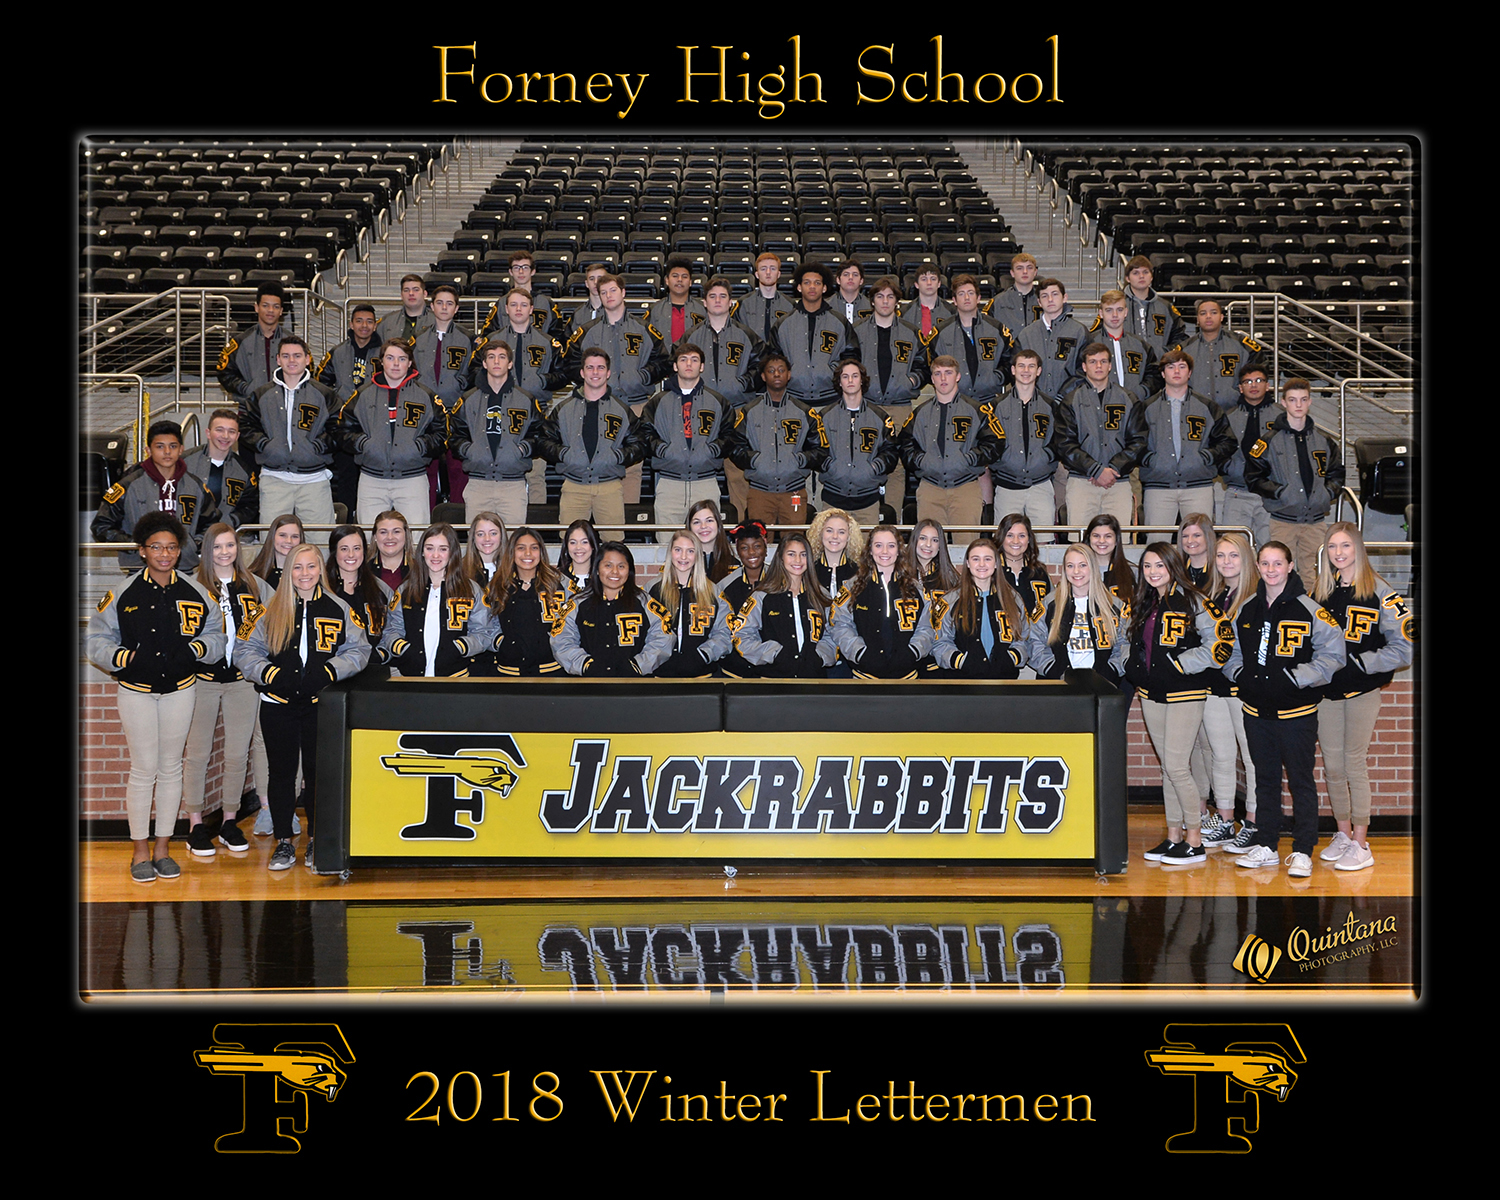 2018 Winter Lettermen Receive Jackets